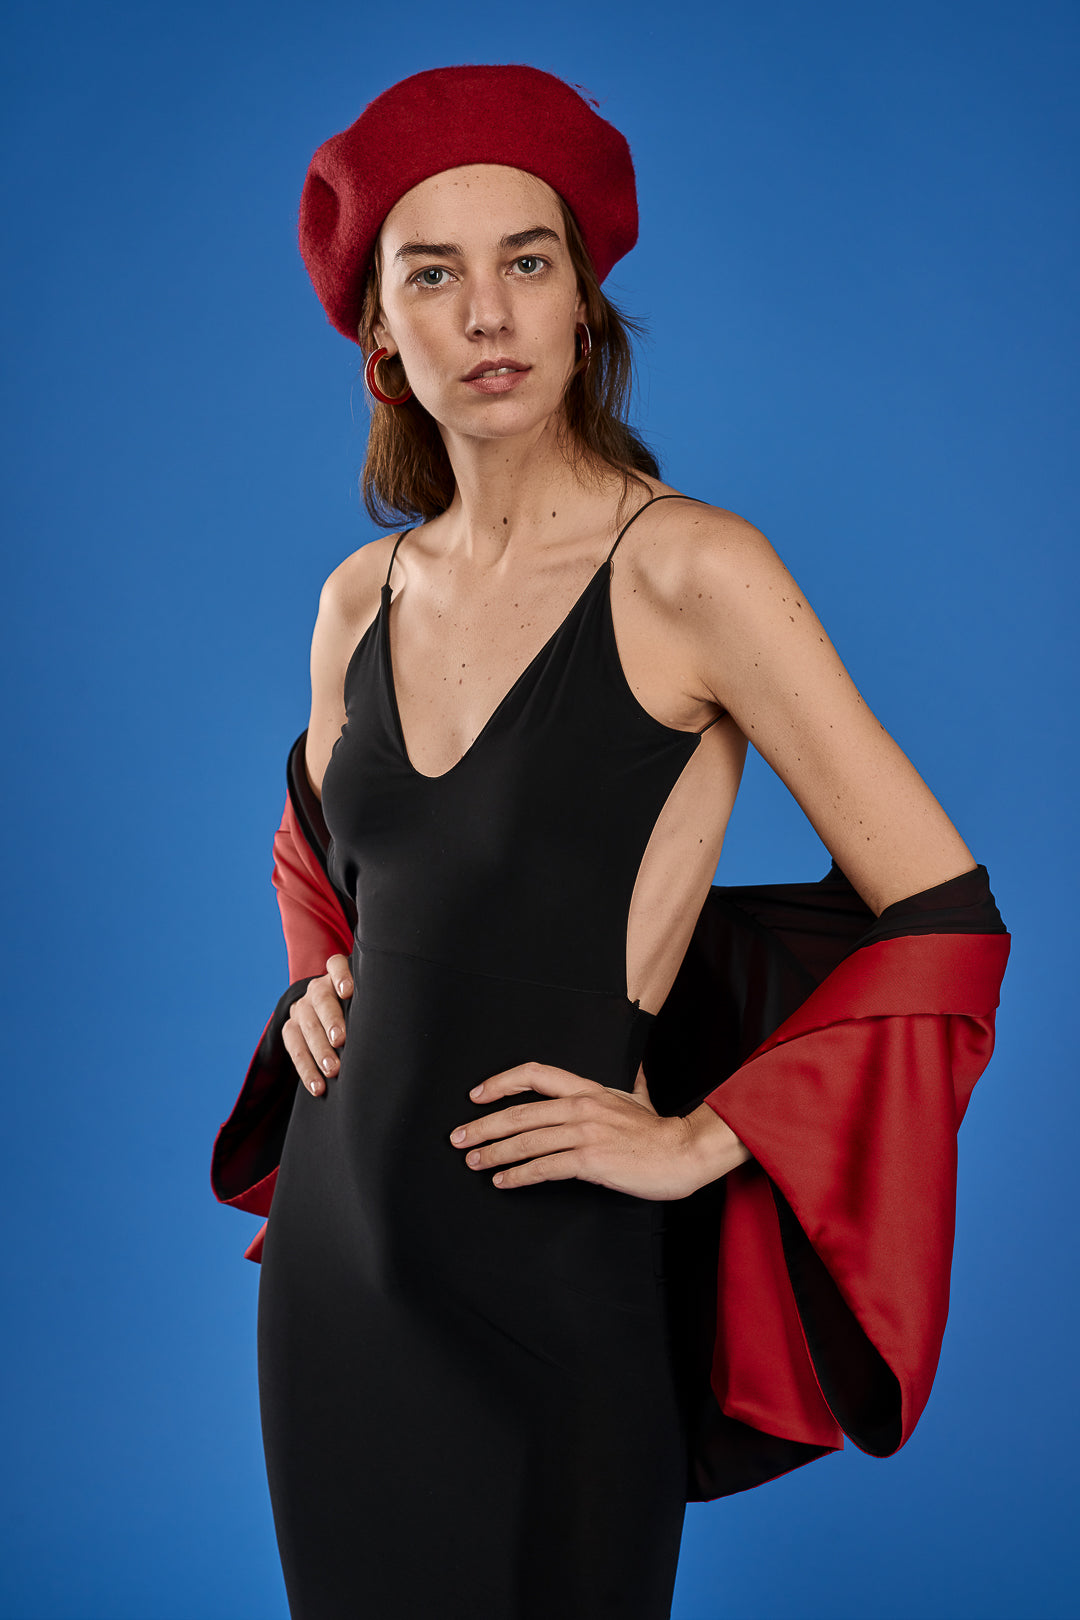 Lena Regh in a black dress with a red béret